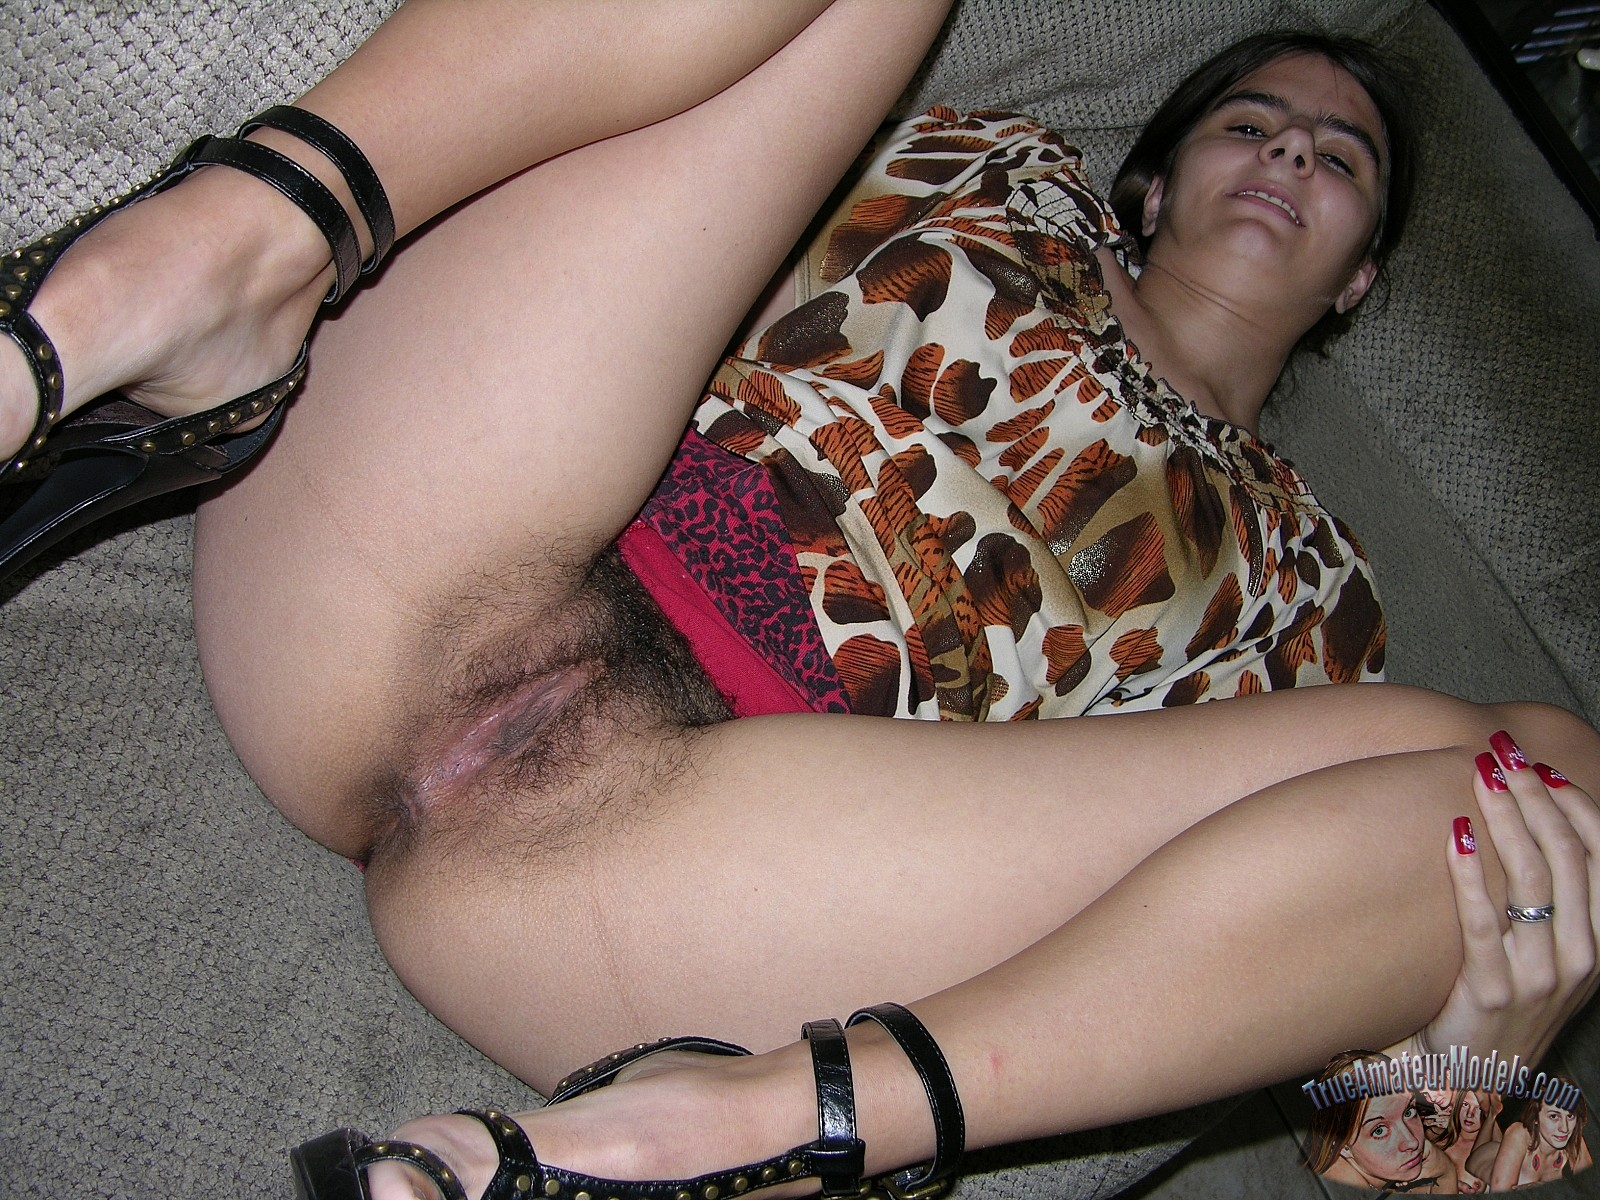 Upskirt indian hairy pussy